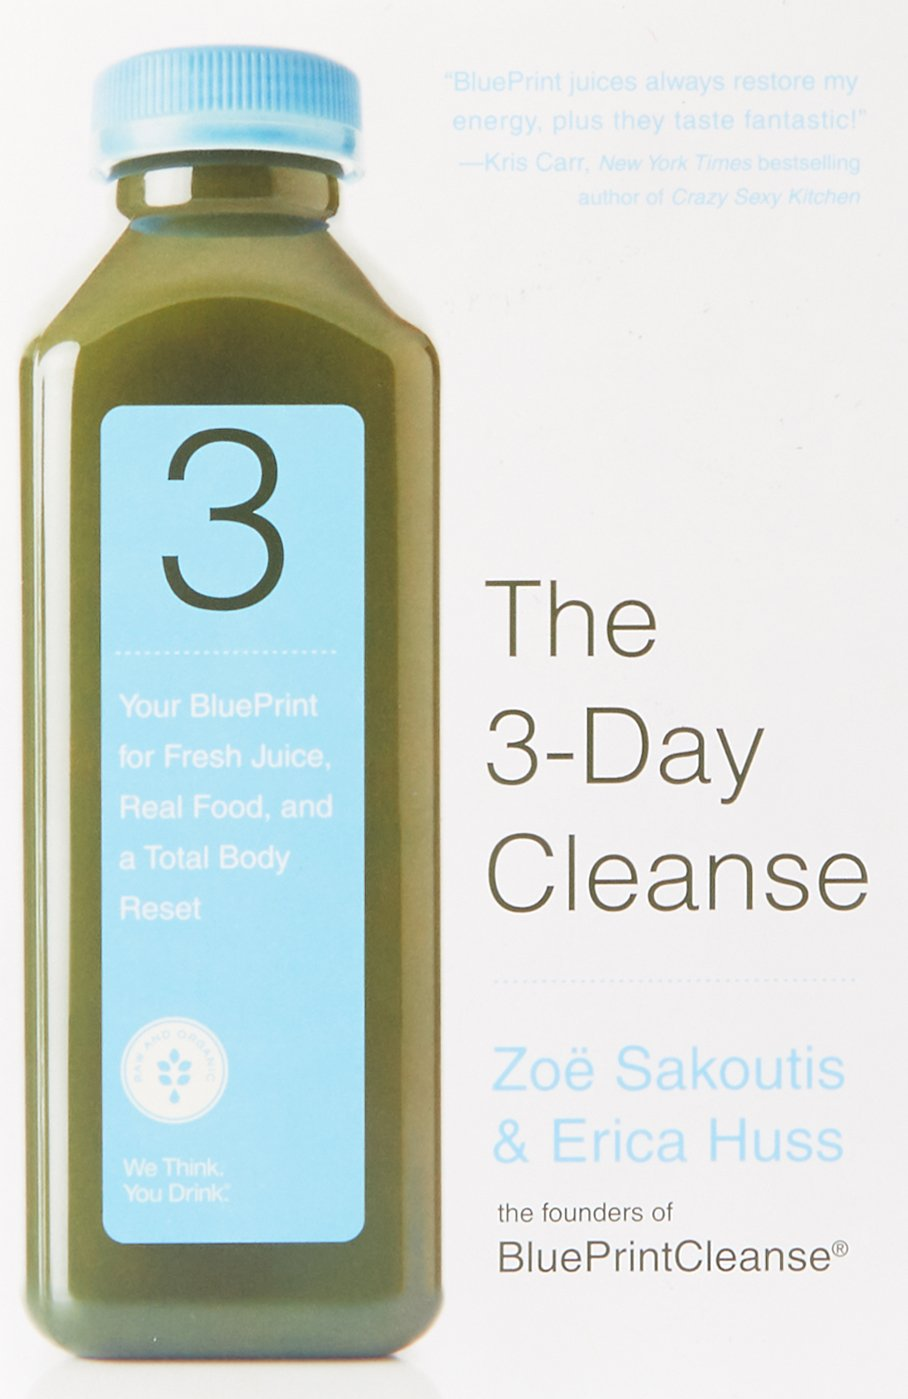 The 3 day cleanse drink fresh juice eat real food and get back the 3 day cleanse drink fresh juice eat real food and get back into your skinny jeans amazon zoe sakoutis erica huss 9780446545716 books malvernweather Choice Image